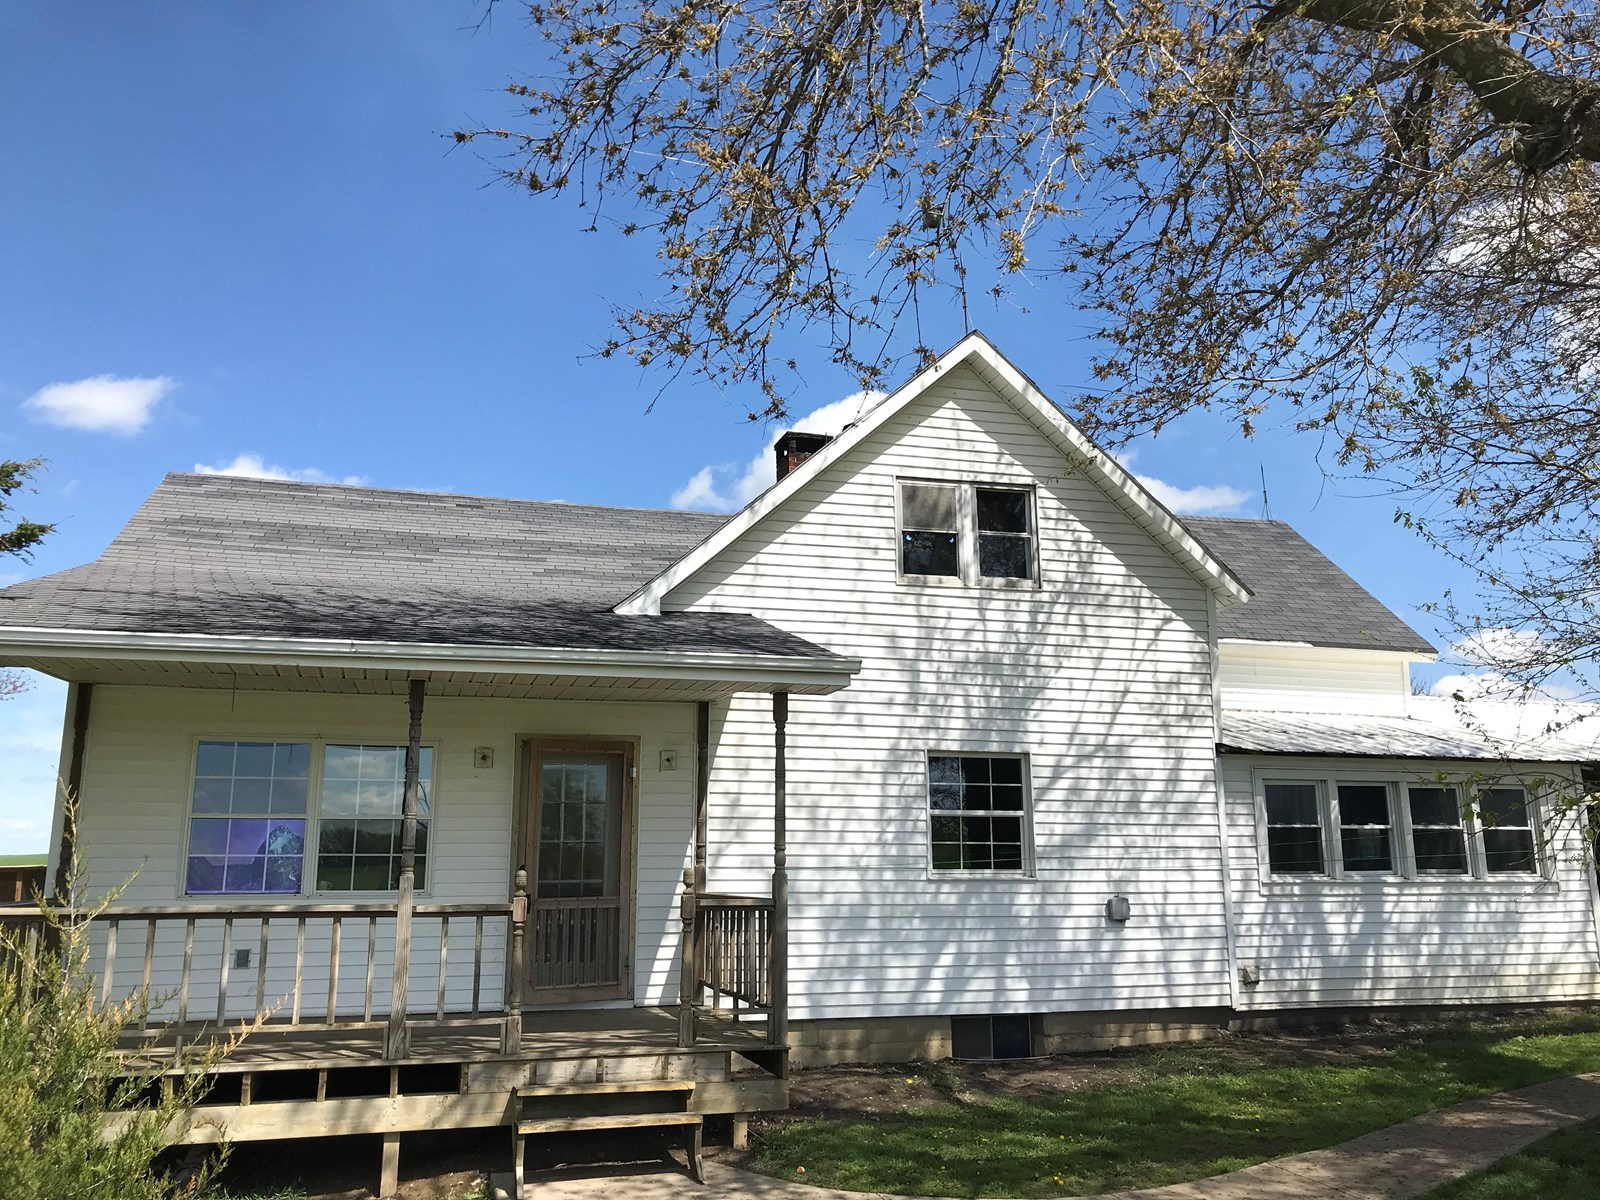 Country Home on 16 Acres For Sale in Mercer County